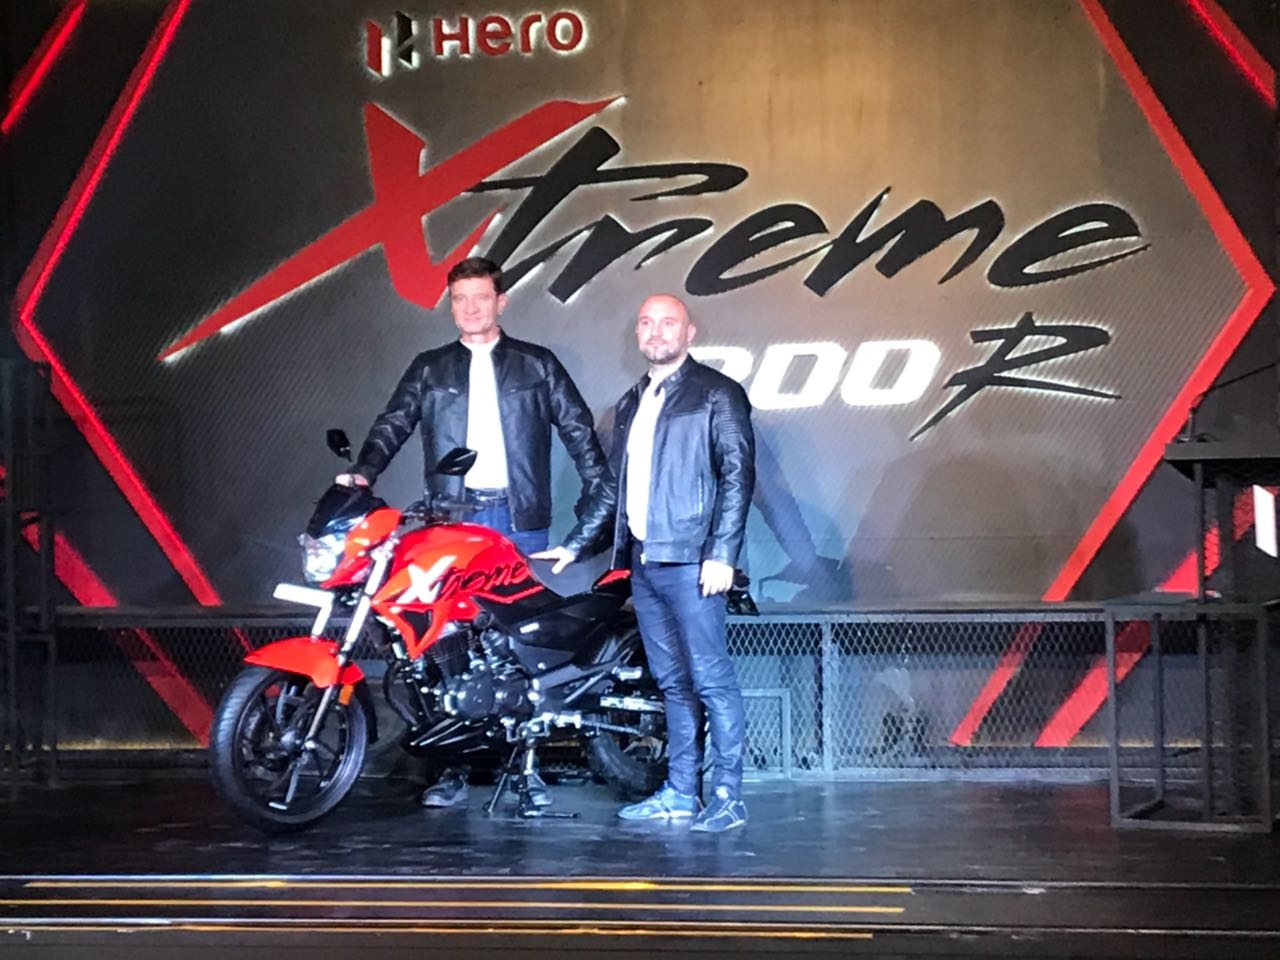 <p>And that's the Hero Xtreme 200R!</p>